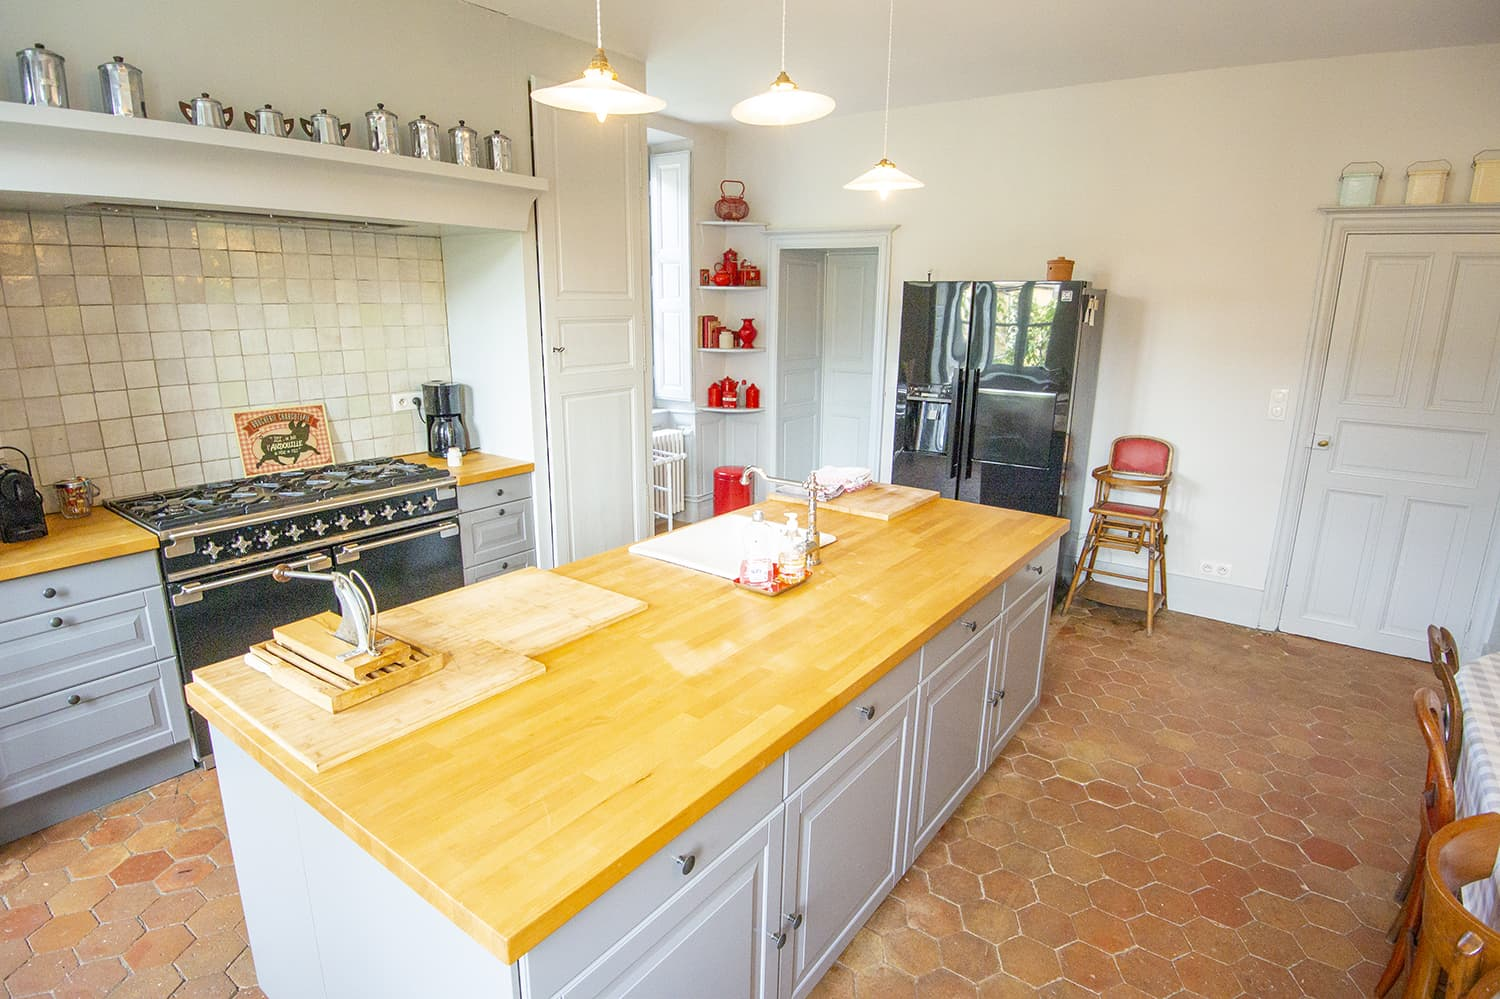 Kitchen in Bourgogne-Franche-Comté self-catering accommodation